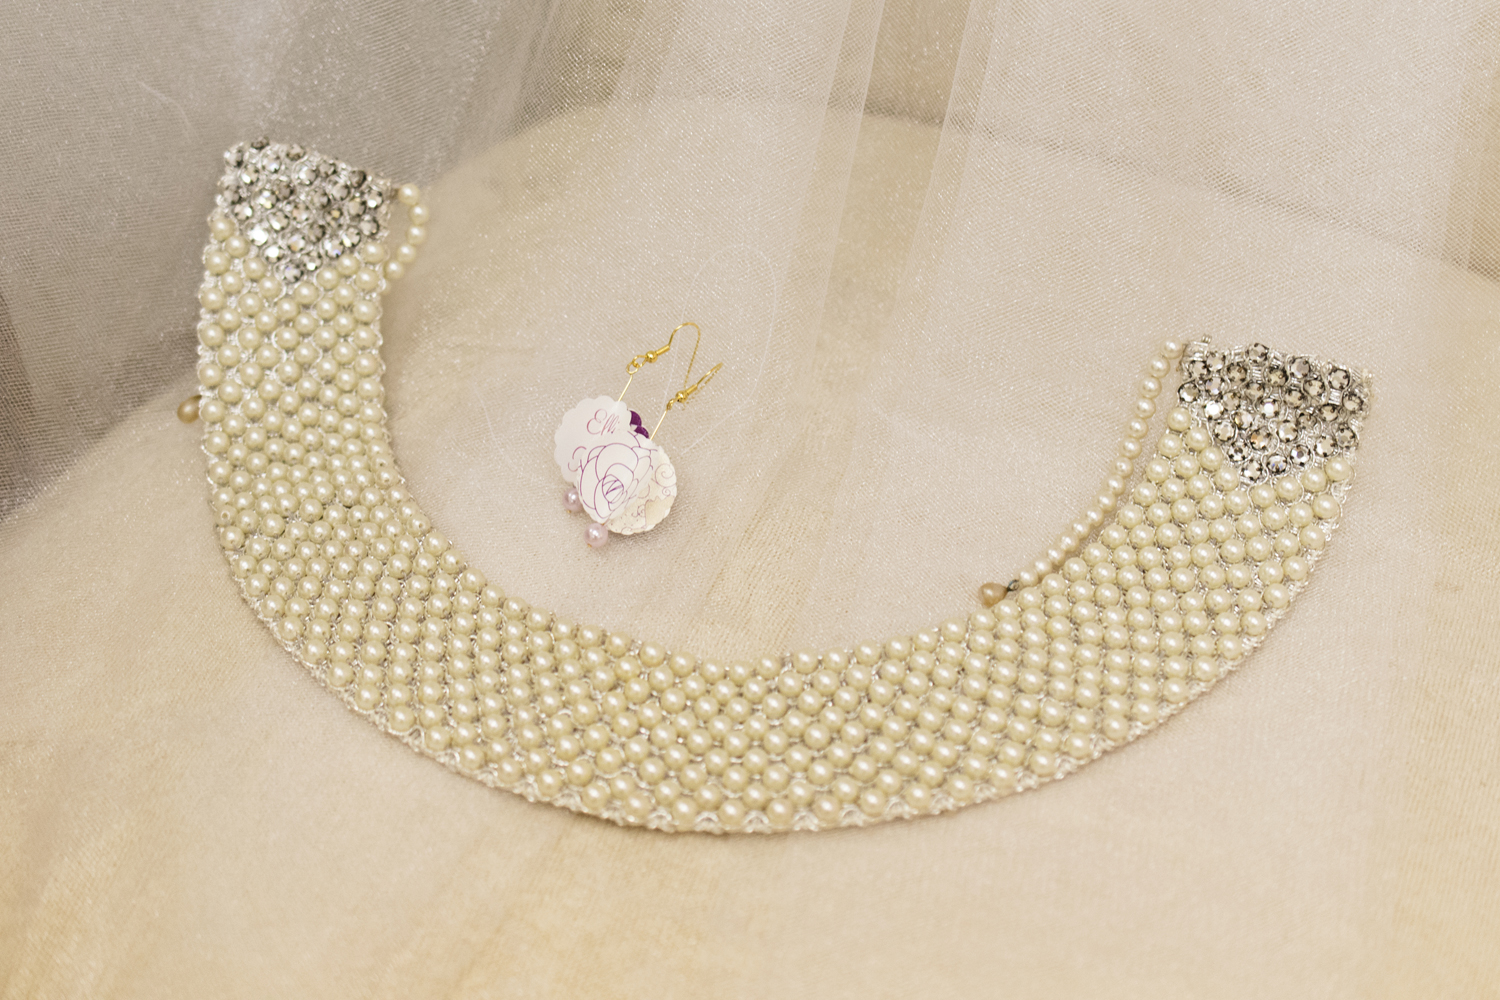 Necklace and handmade earring wedding details